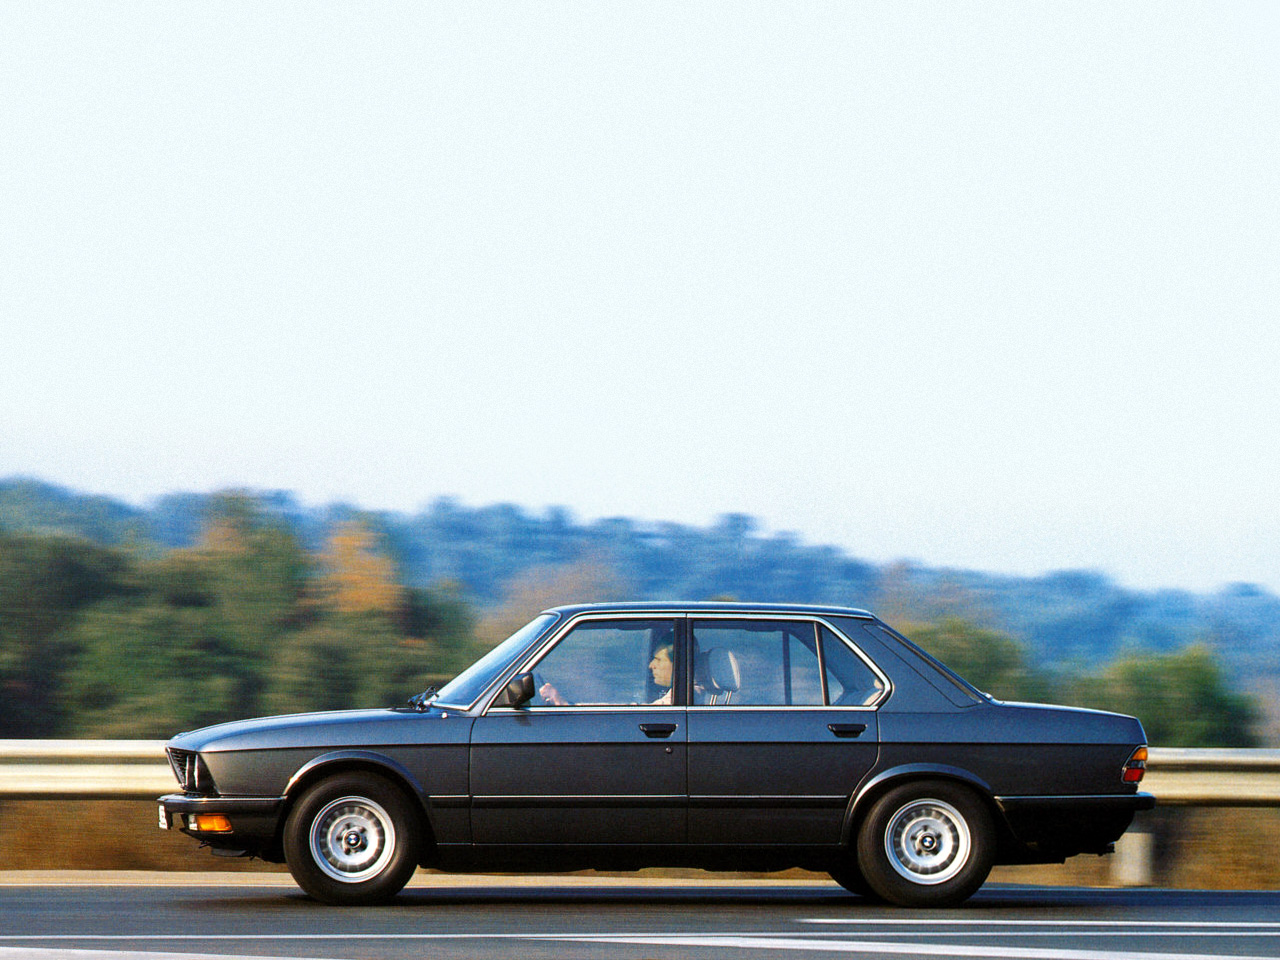 BMW 5 series 525e 1983 photo - 8